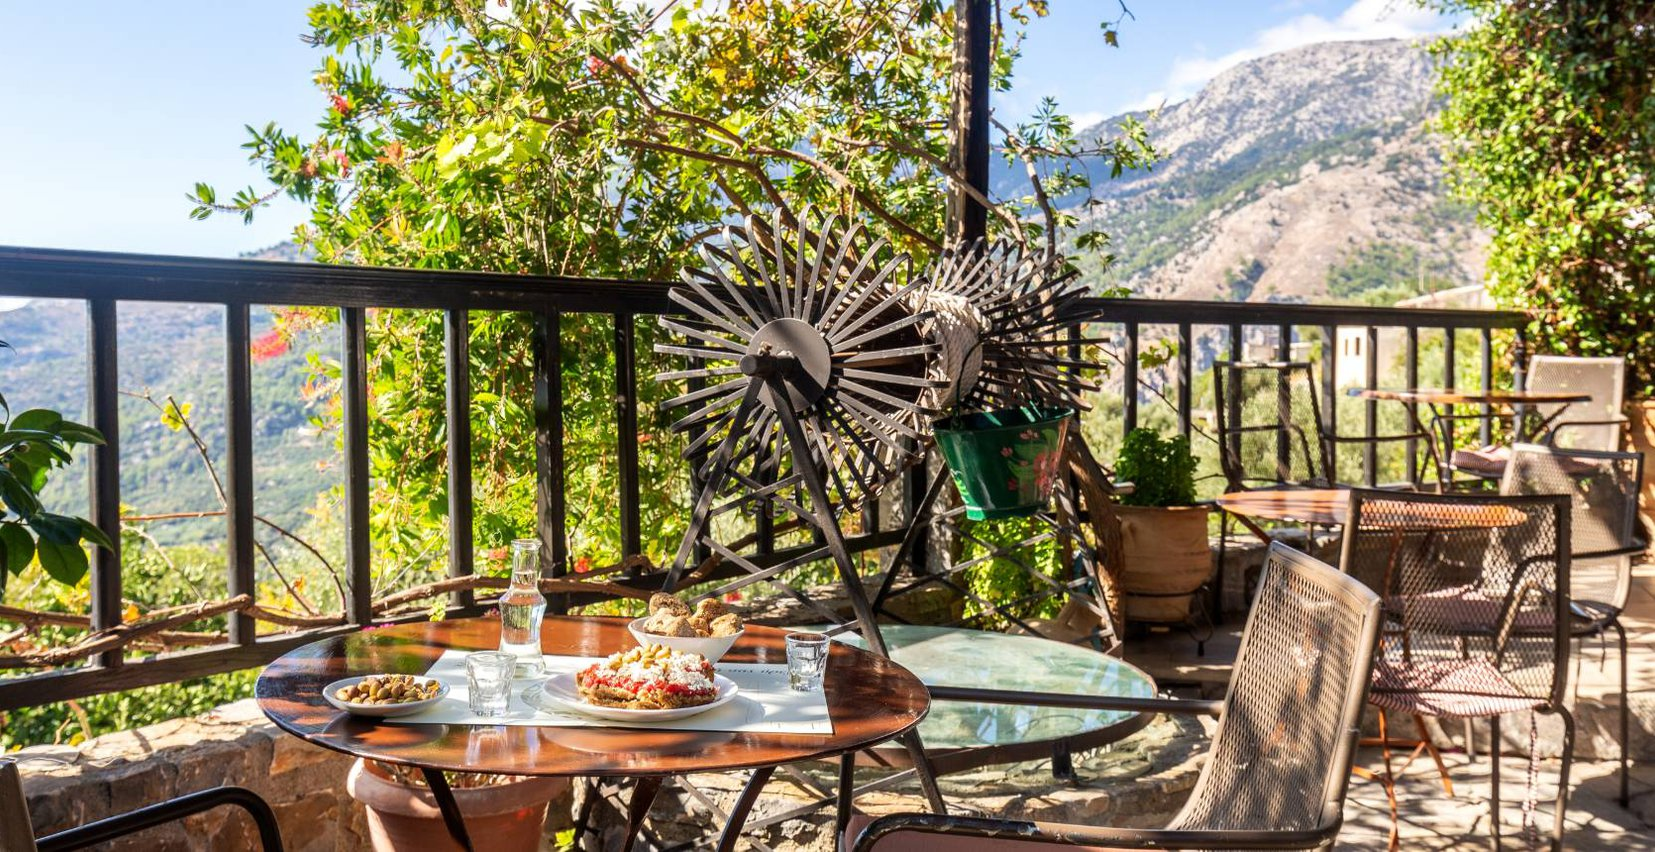 The outdoors restaurant of Mala Villa with the tables with delicious food like cretan ntakos, olives, Cretan raki, bread, the old renovated well in the side of the area, and the view of the beautiful mountains